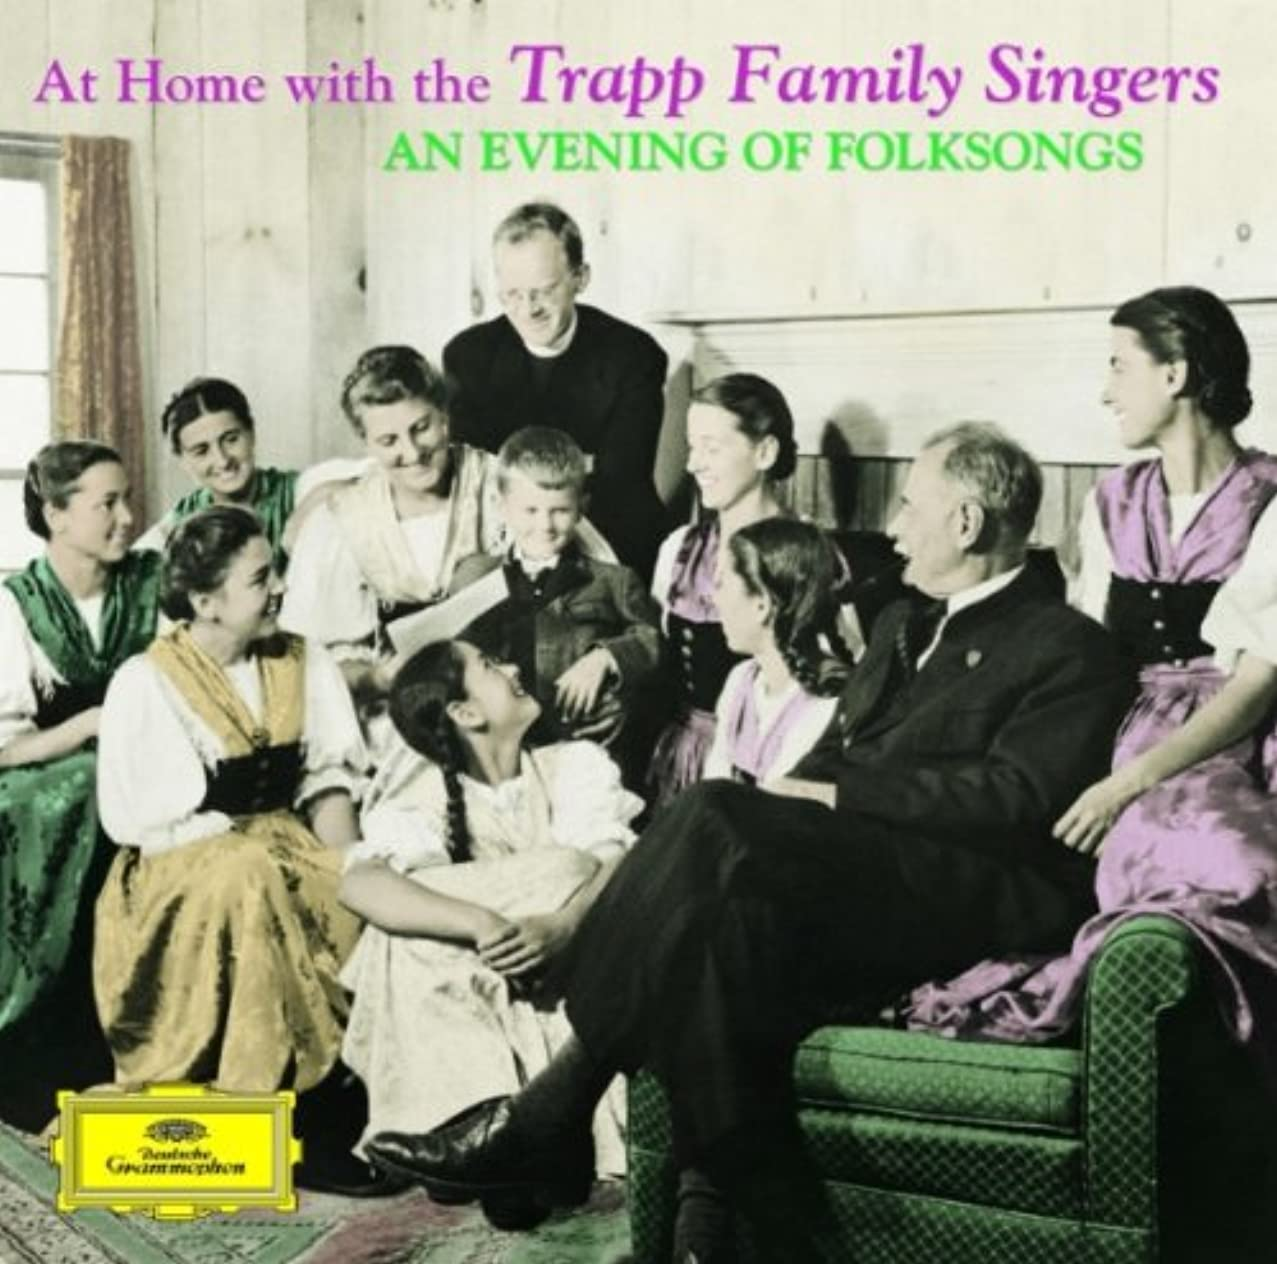 At Home With the Trapp Family Singers